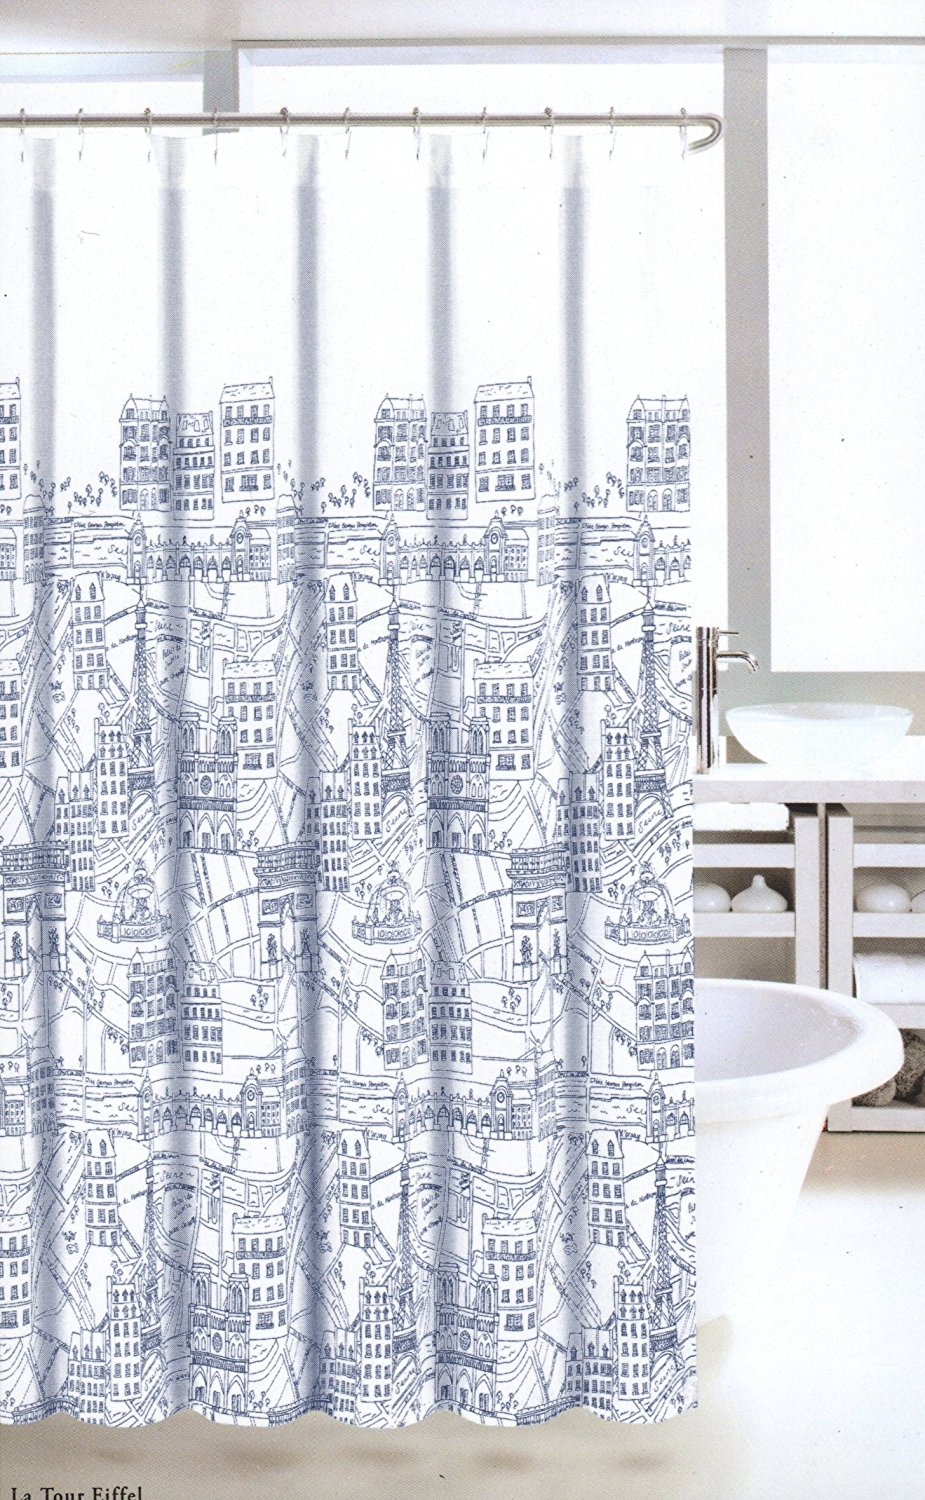 Nicole Miller Fabric Shower Curtain Navy Blue White France Paris Map Print  Fiffel Tower, Very Cute Fabric Shower Curtain Navy Blue And White.., ...